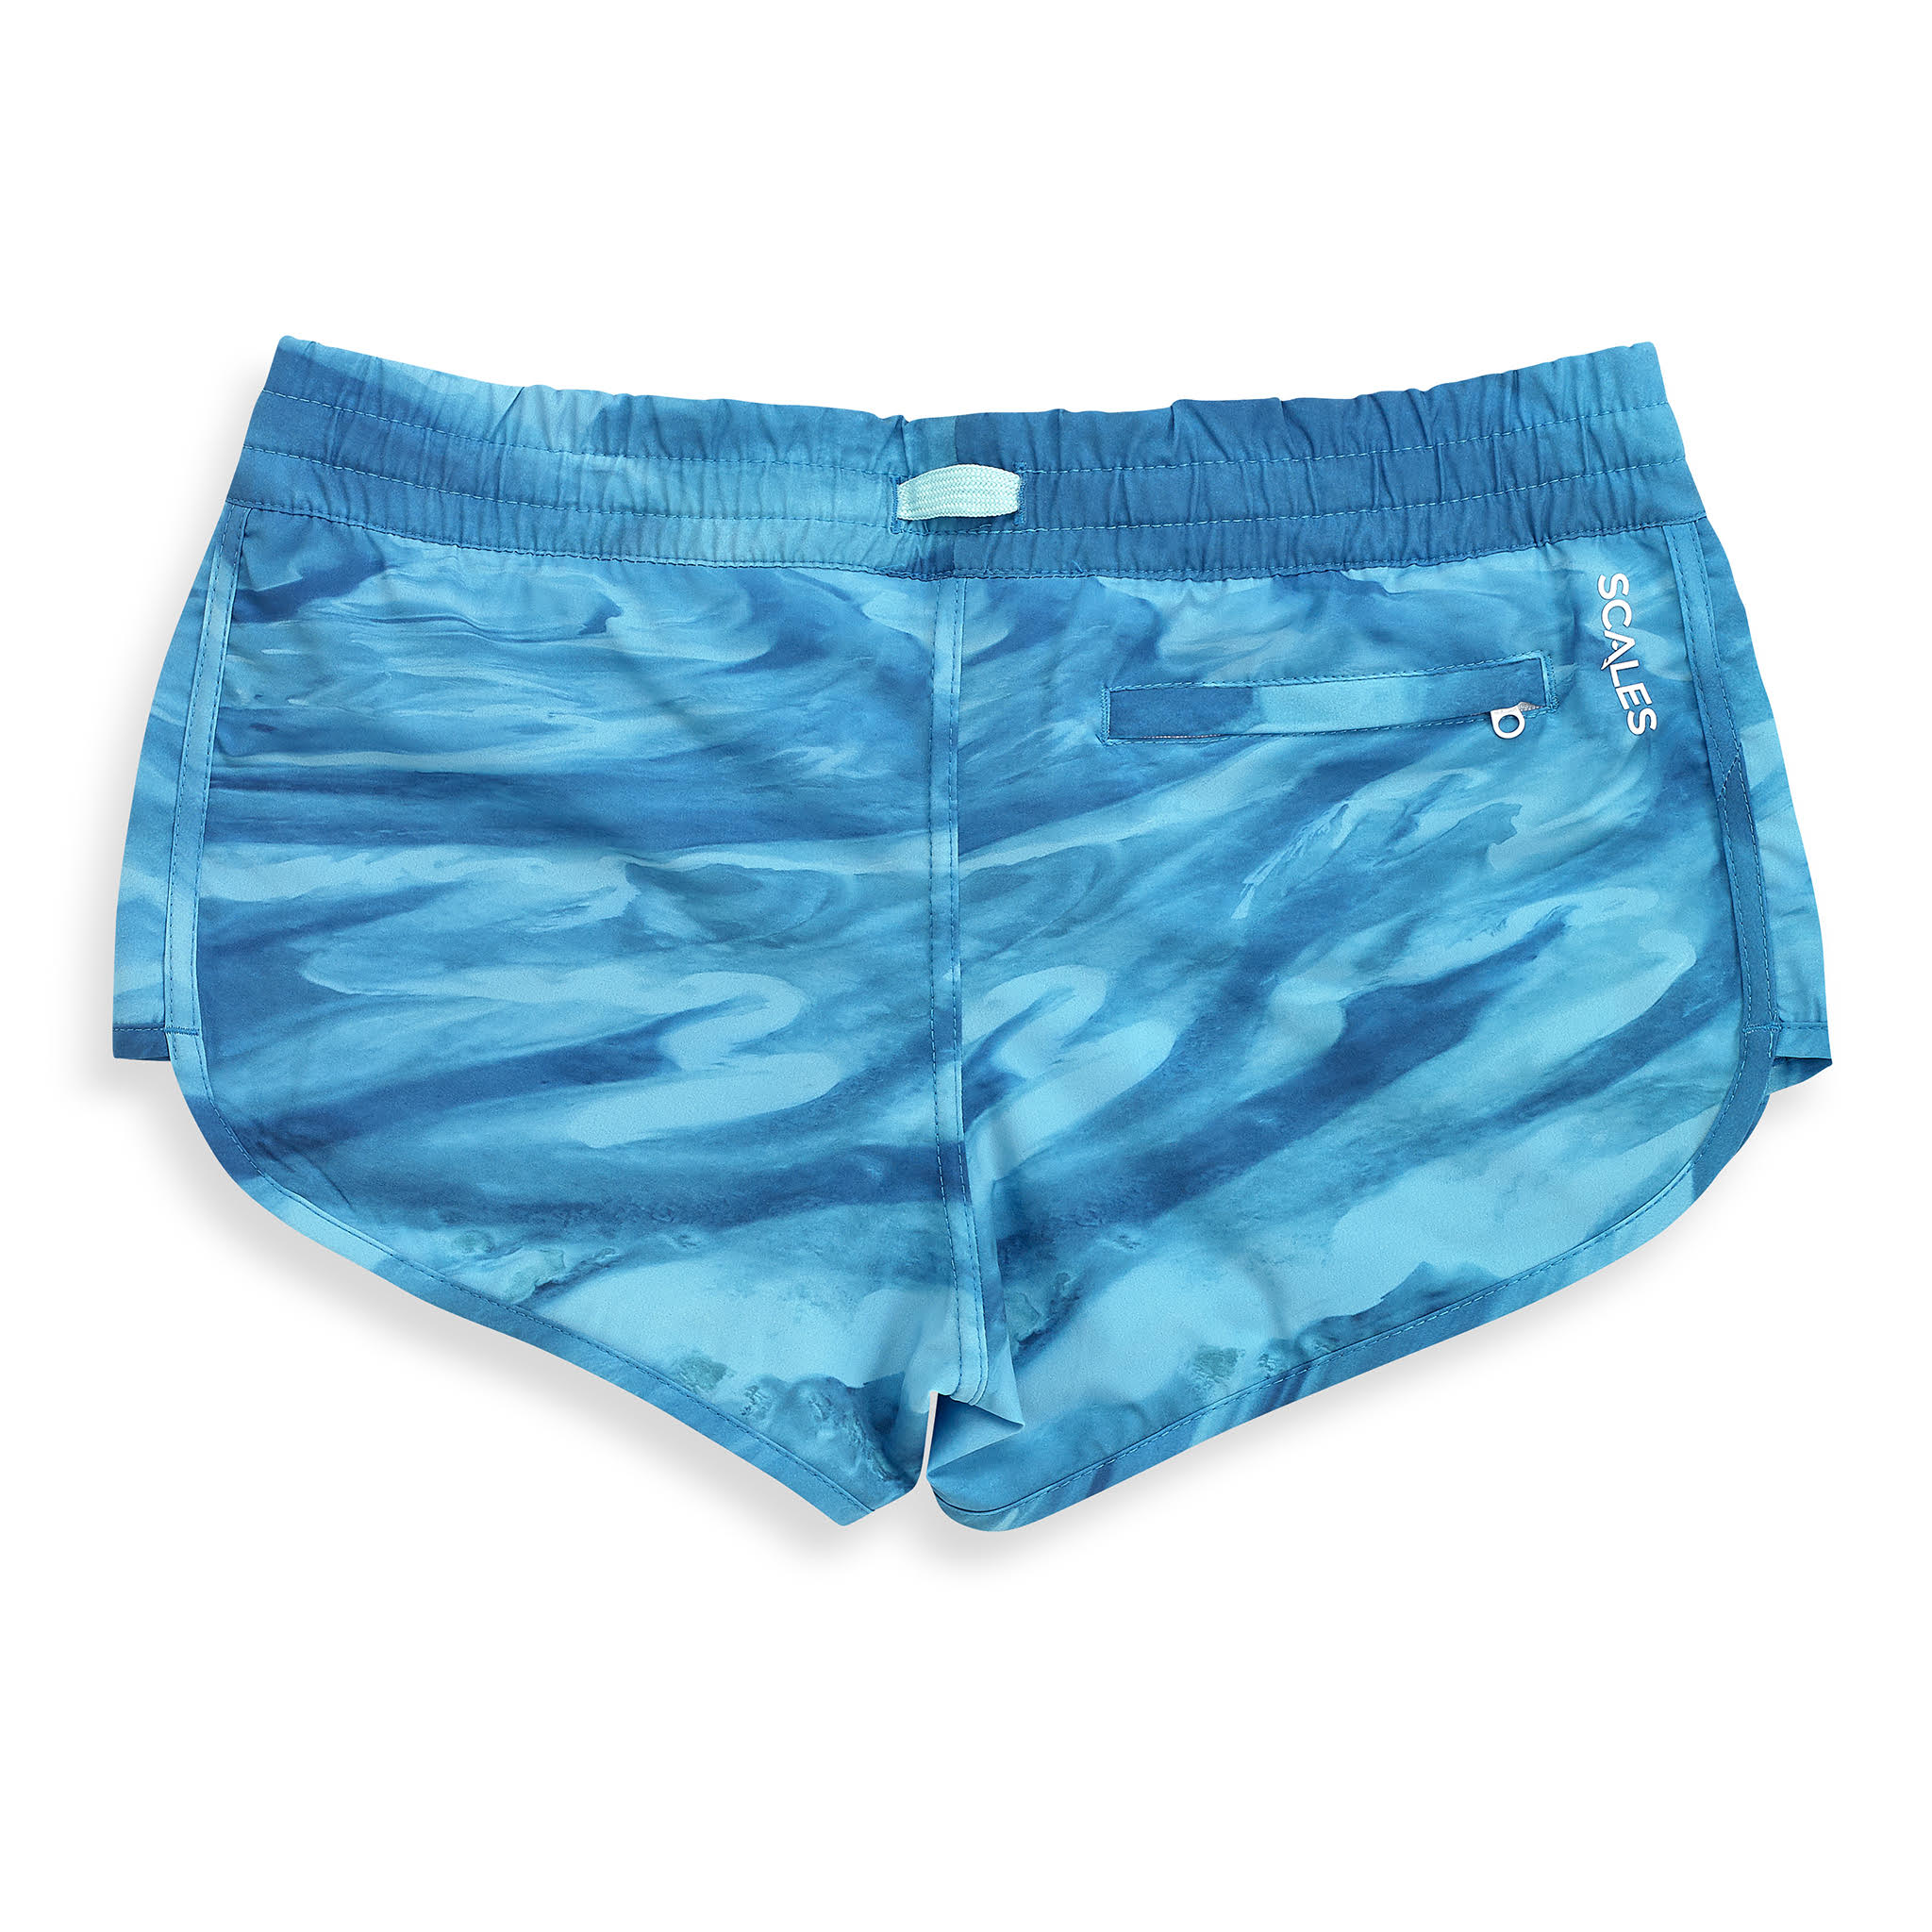 Bahamas Current Womens Boardshorts Back